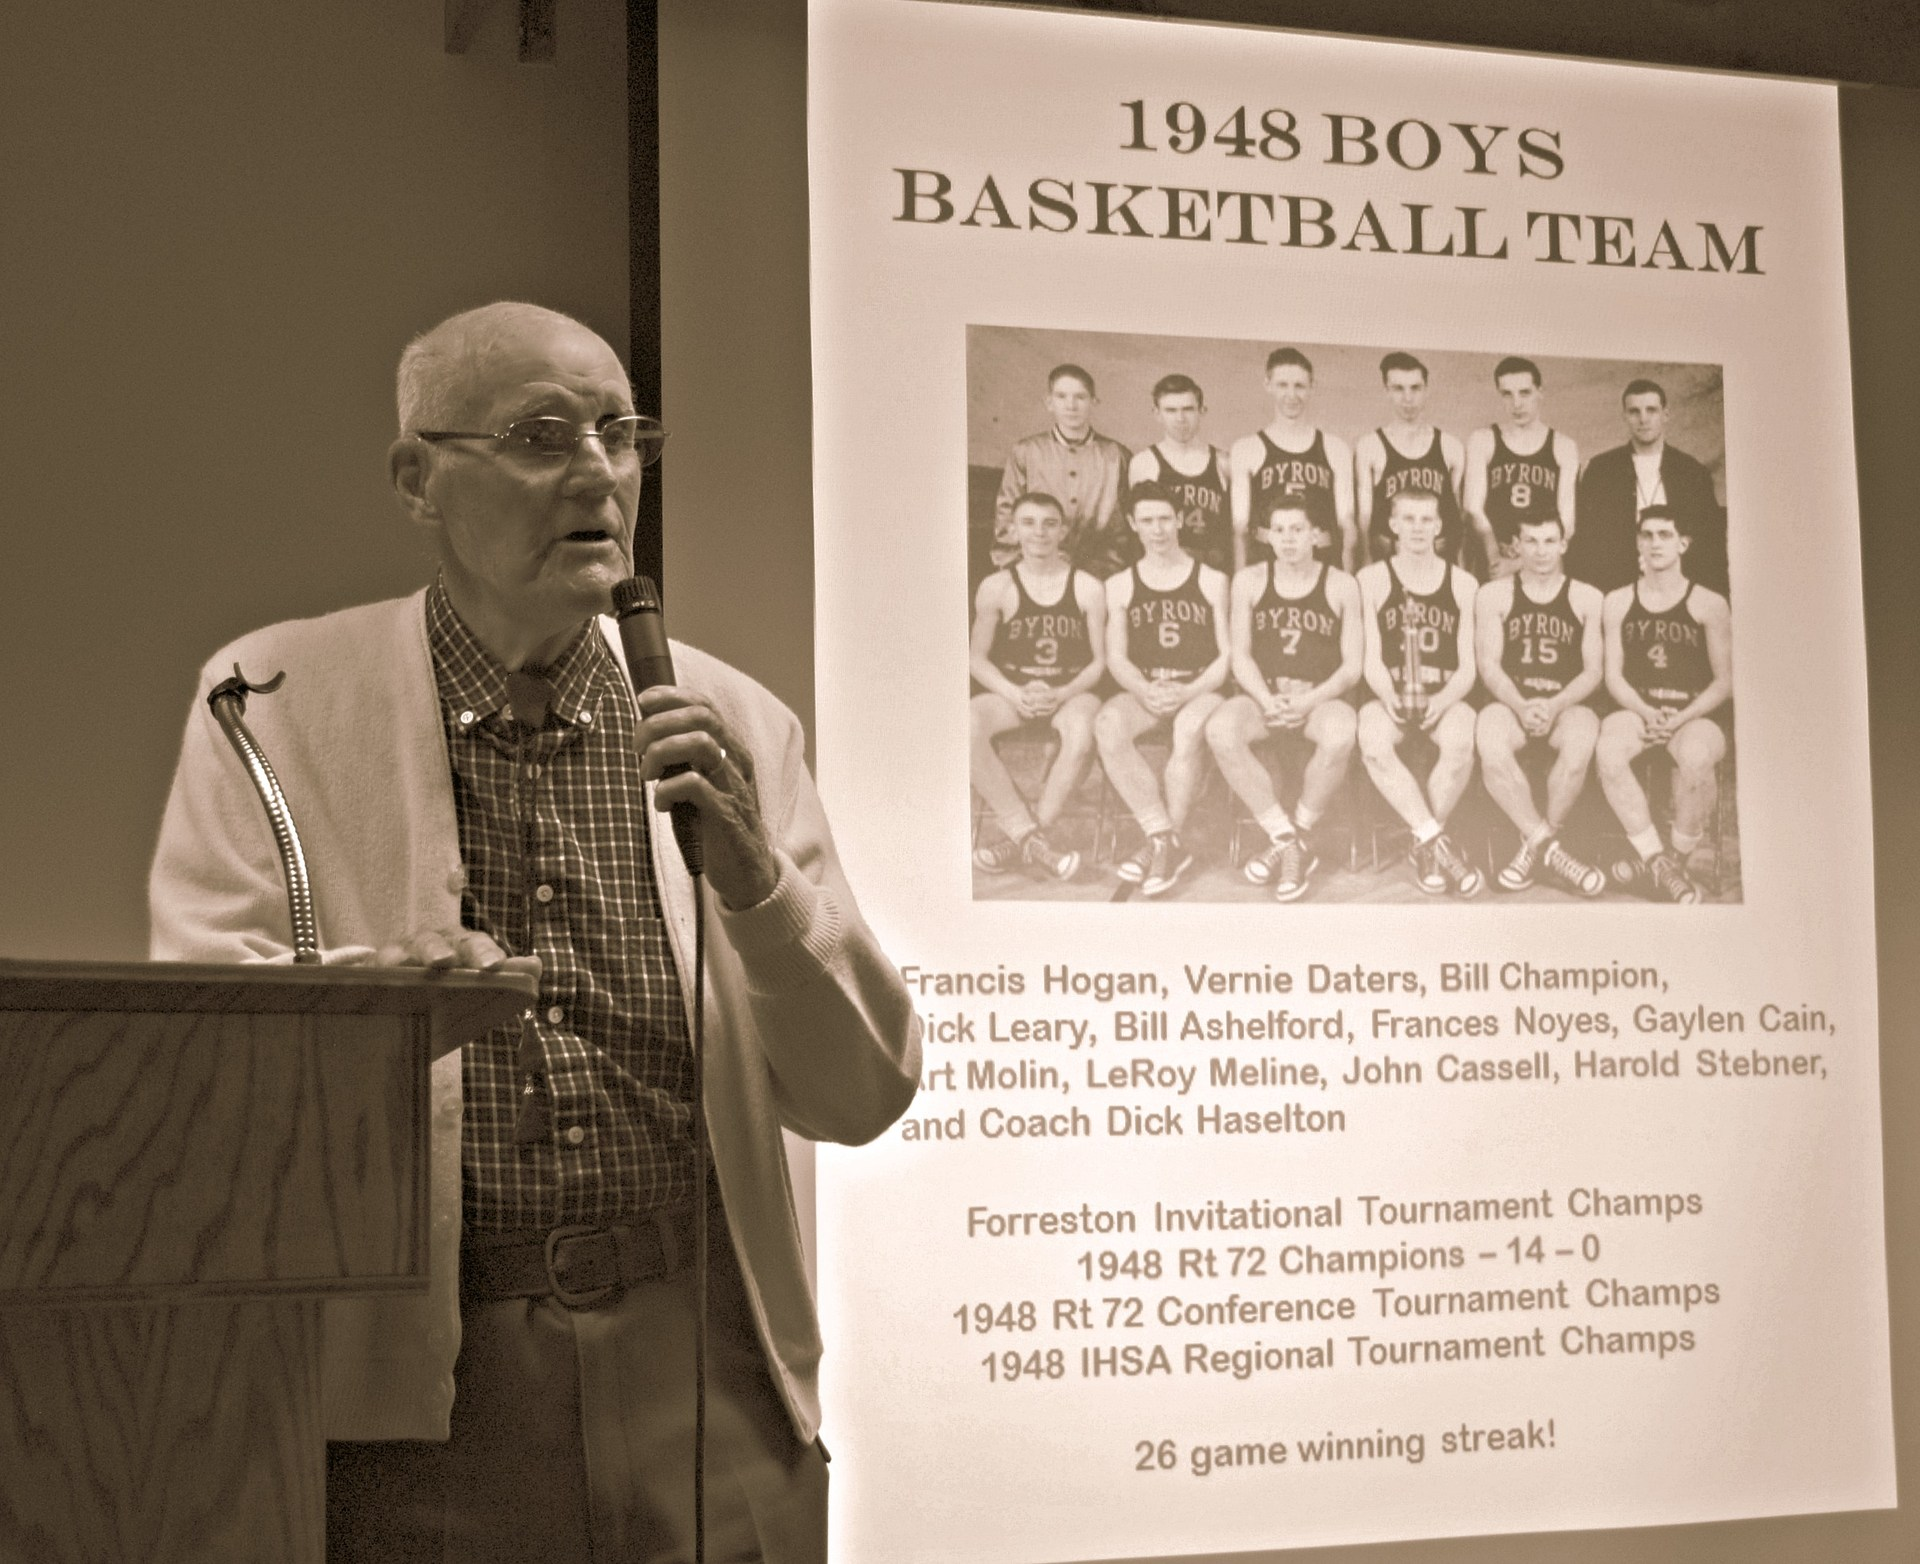 1948 Boys Basketball Team Coach